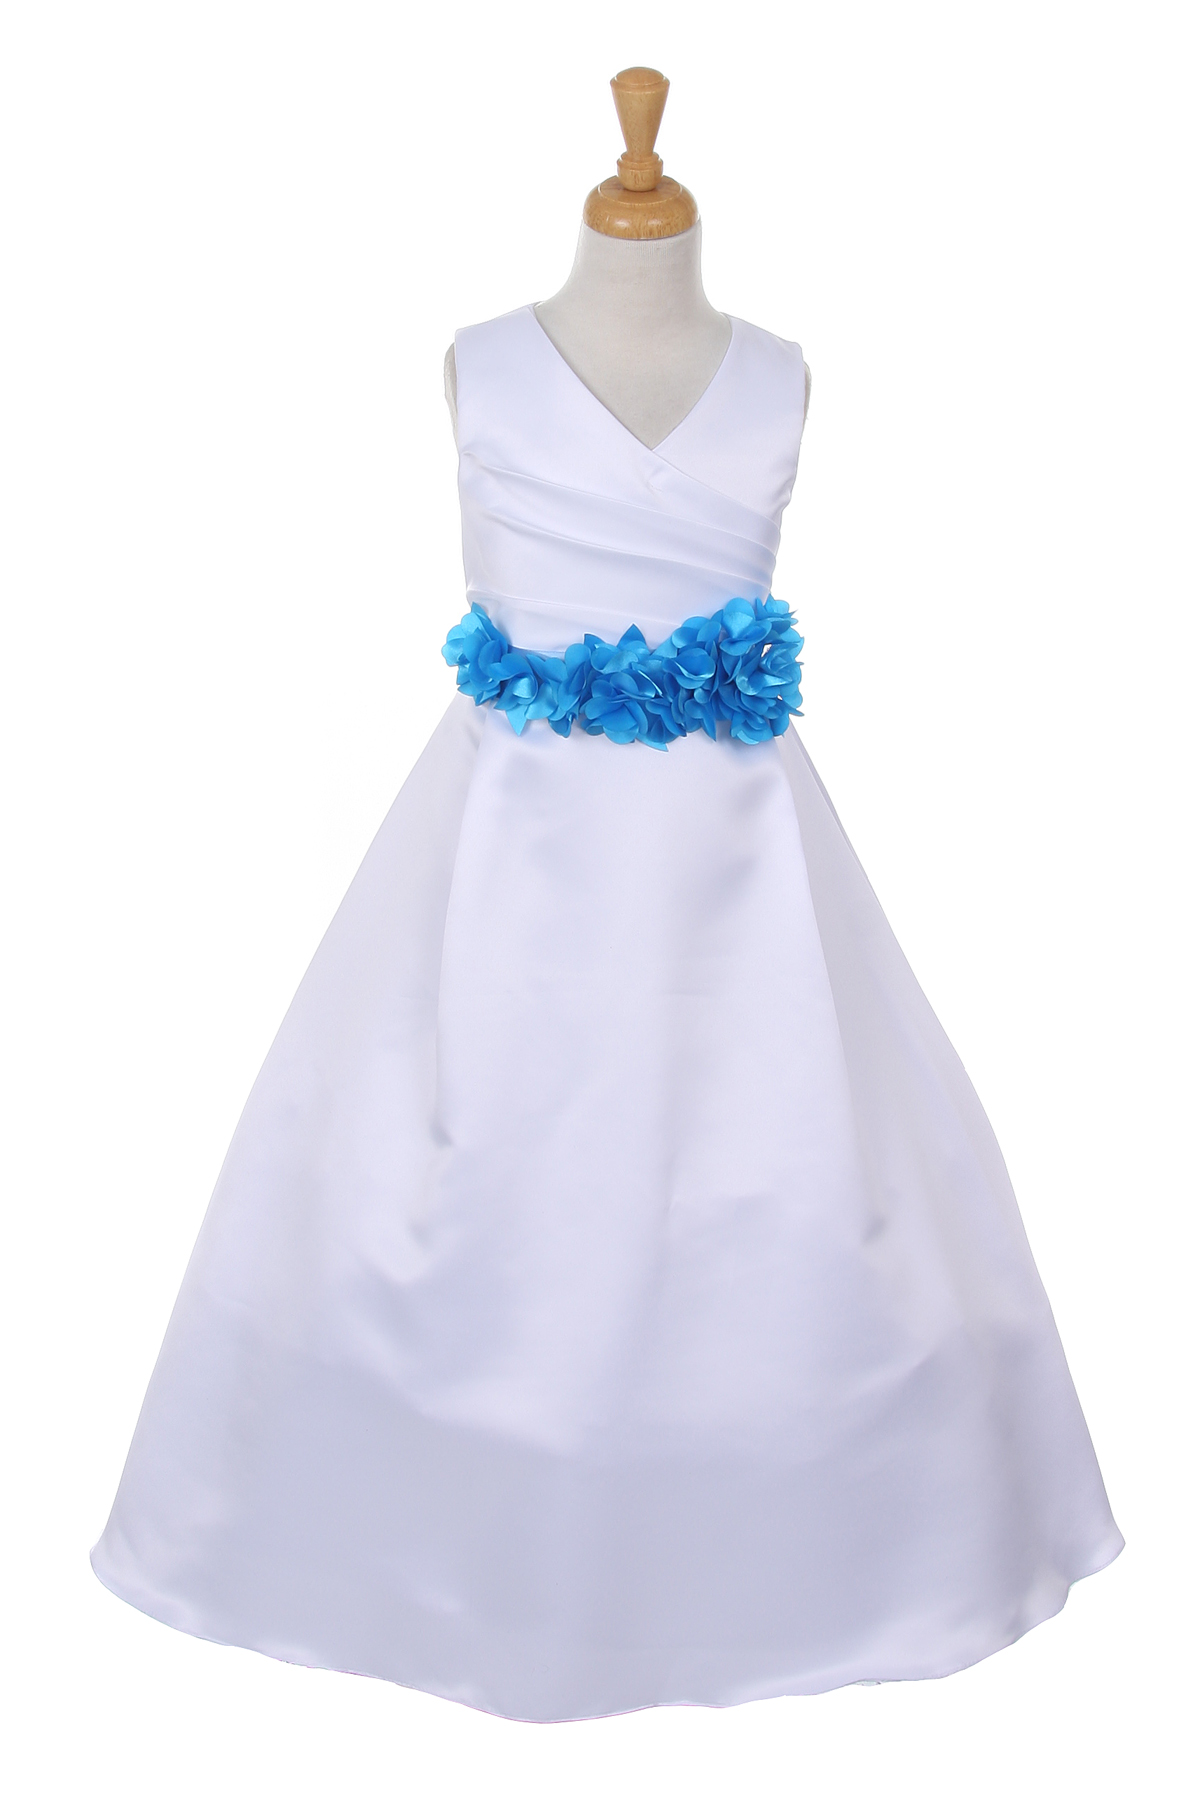 white dress with turquoise flower sash